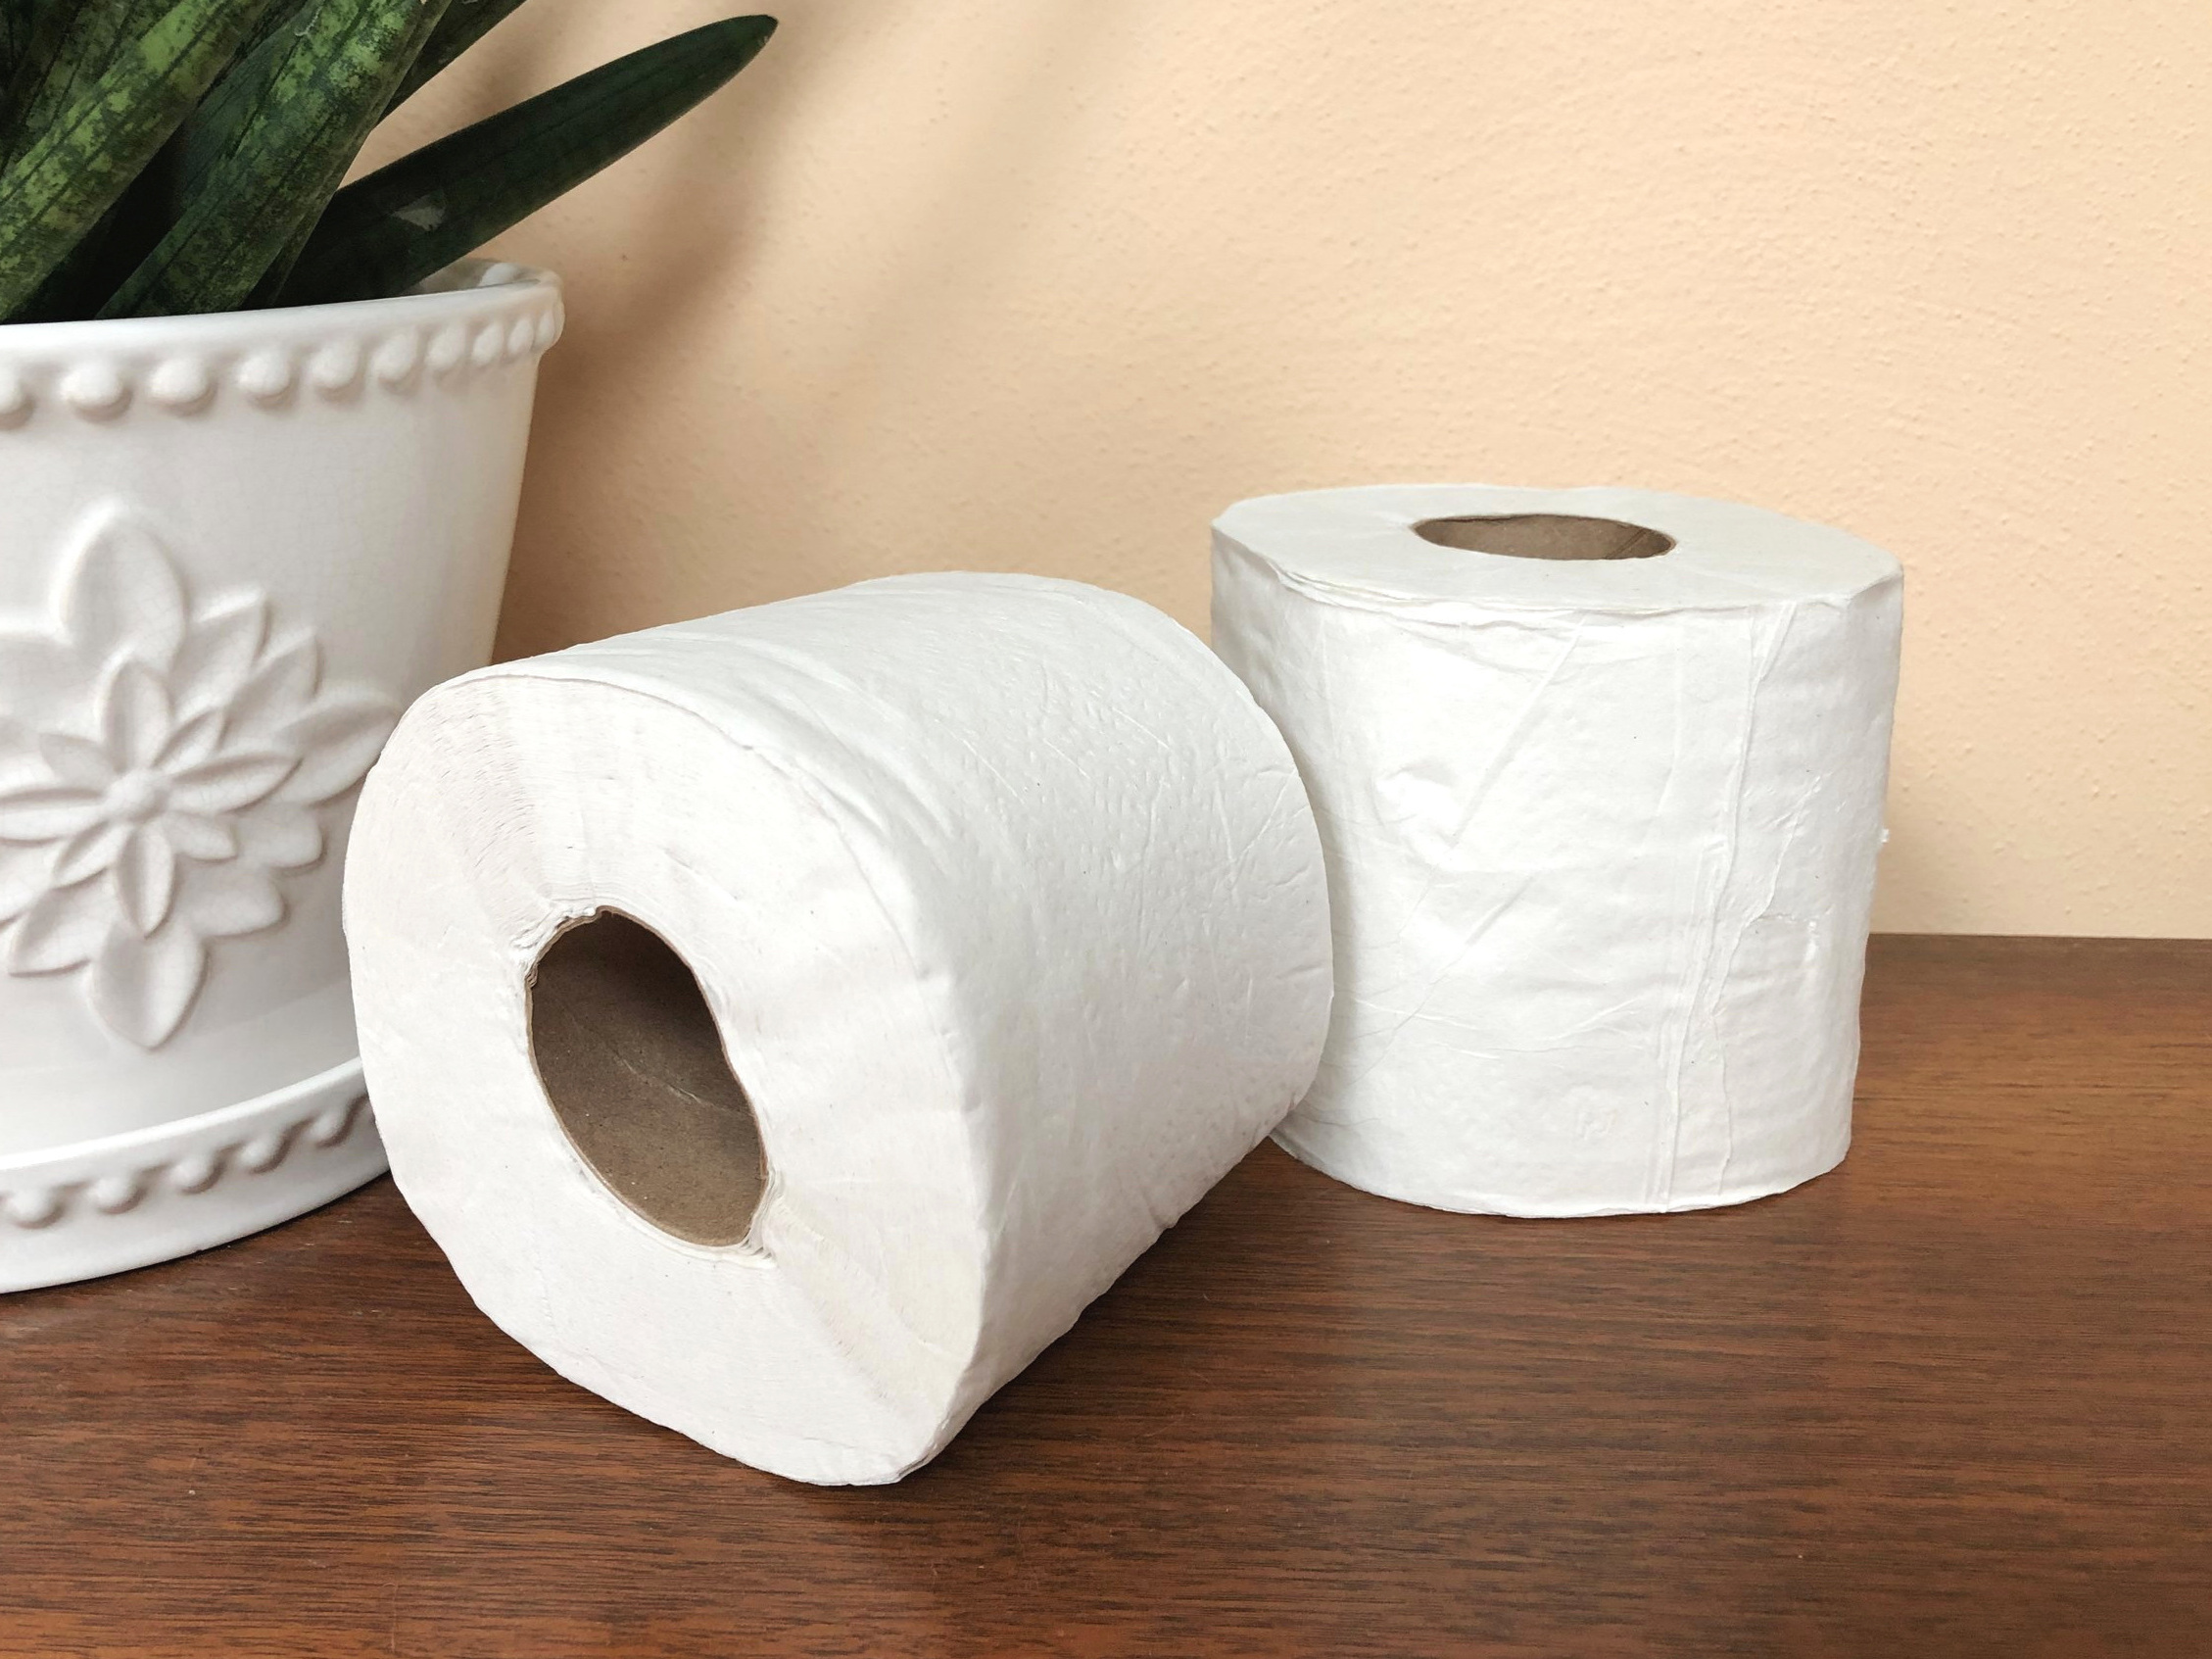 The last two rolls of toilet paper from trees that will ever find use in this house.